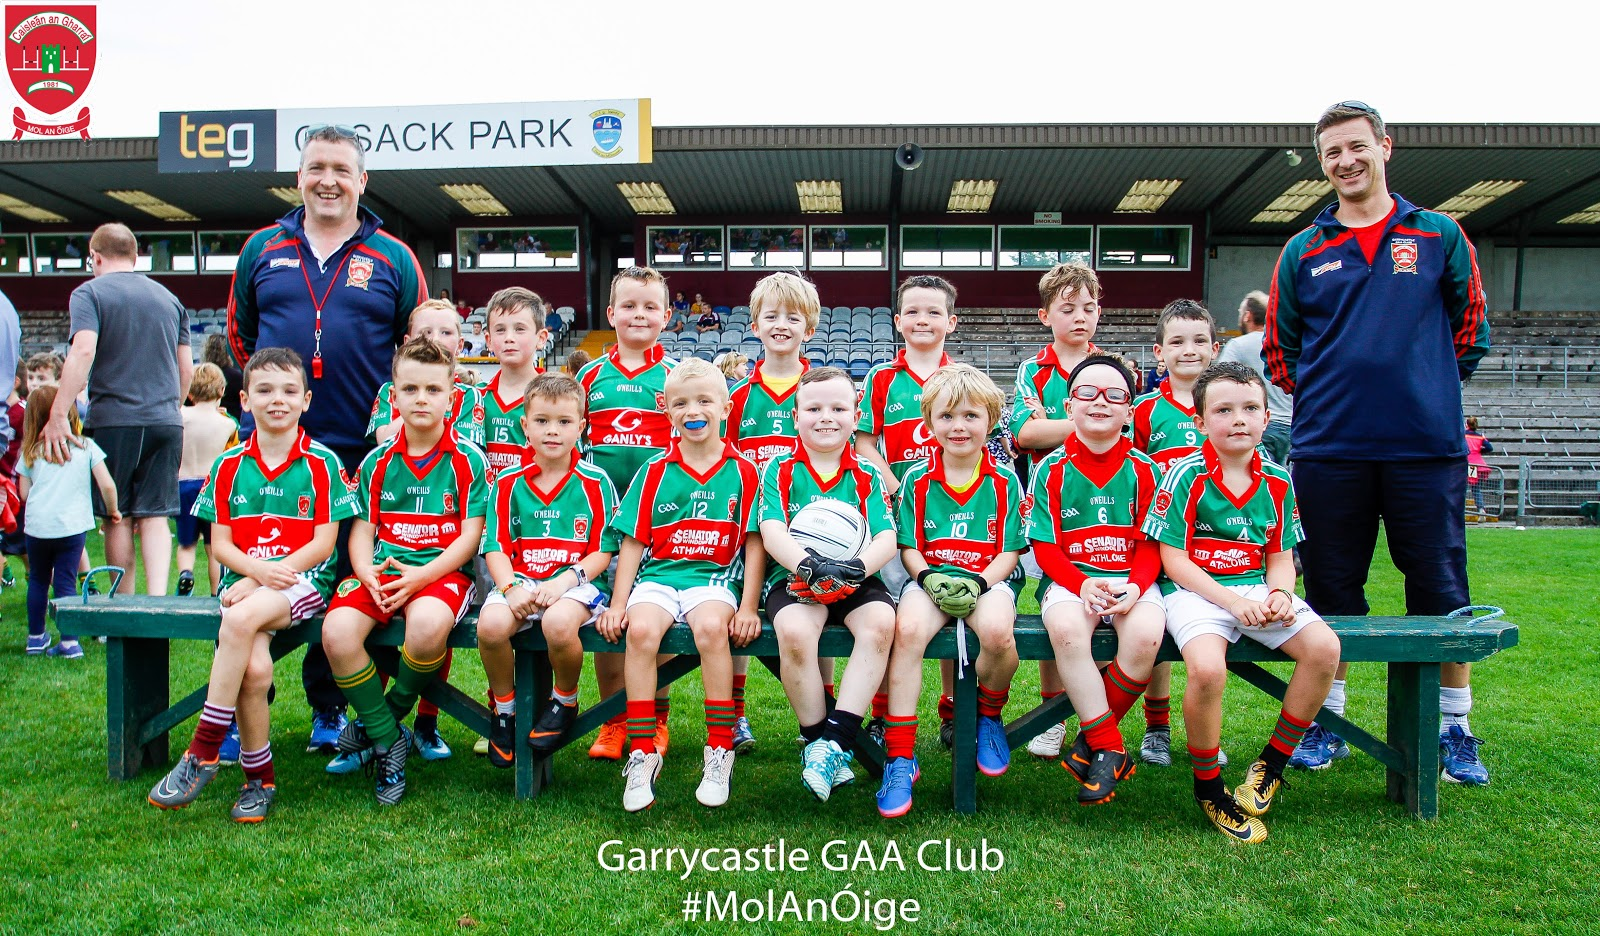 21/08/2018. Garrycastle U8 Cusack Park. Photo: Ashley Cahill/AC Sports Images